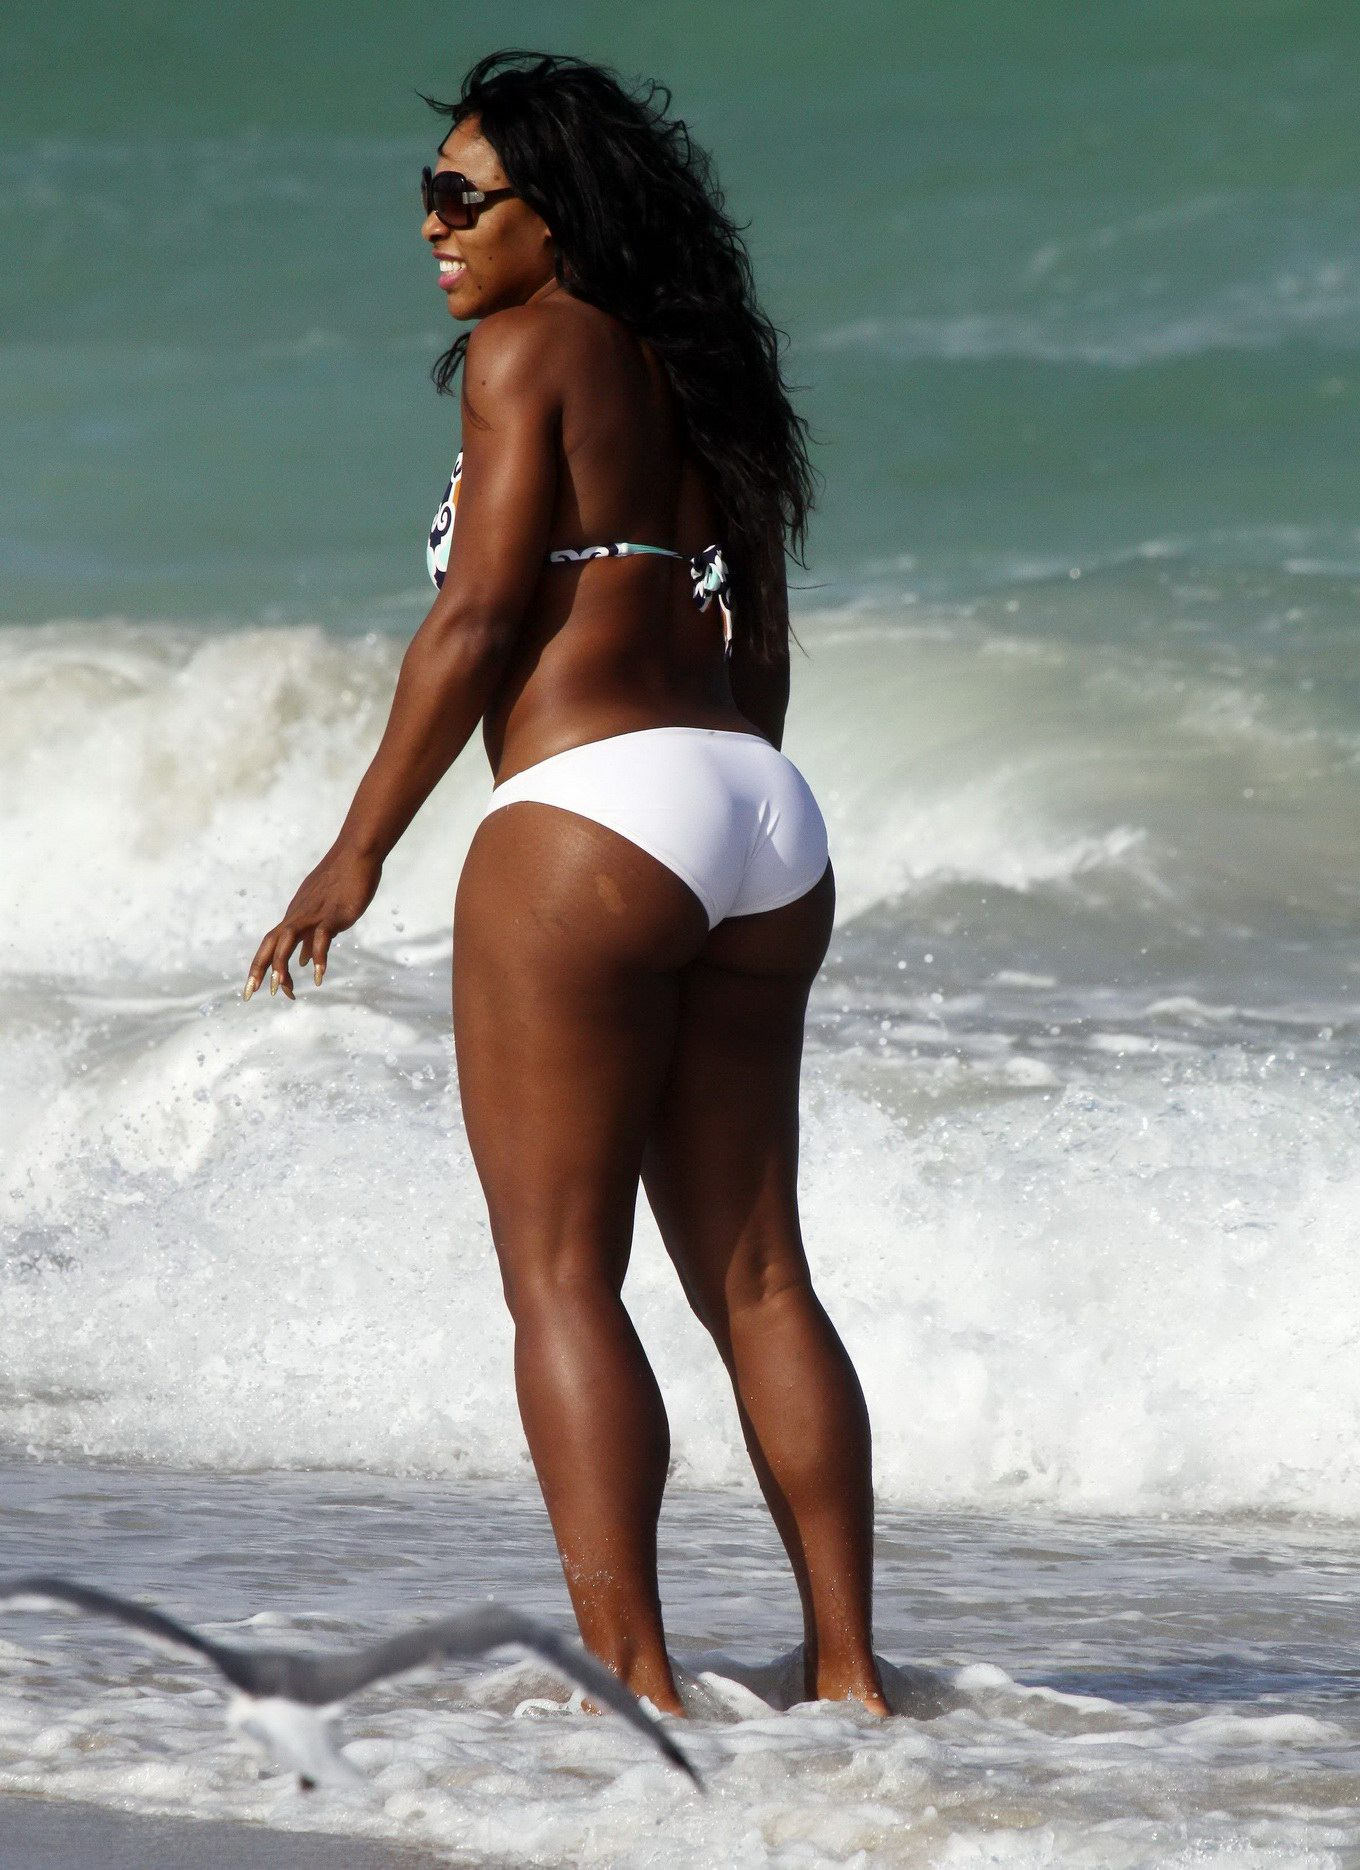 Serena williams serves up racy look in skimpy bikini while on vacation in bahamas